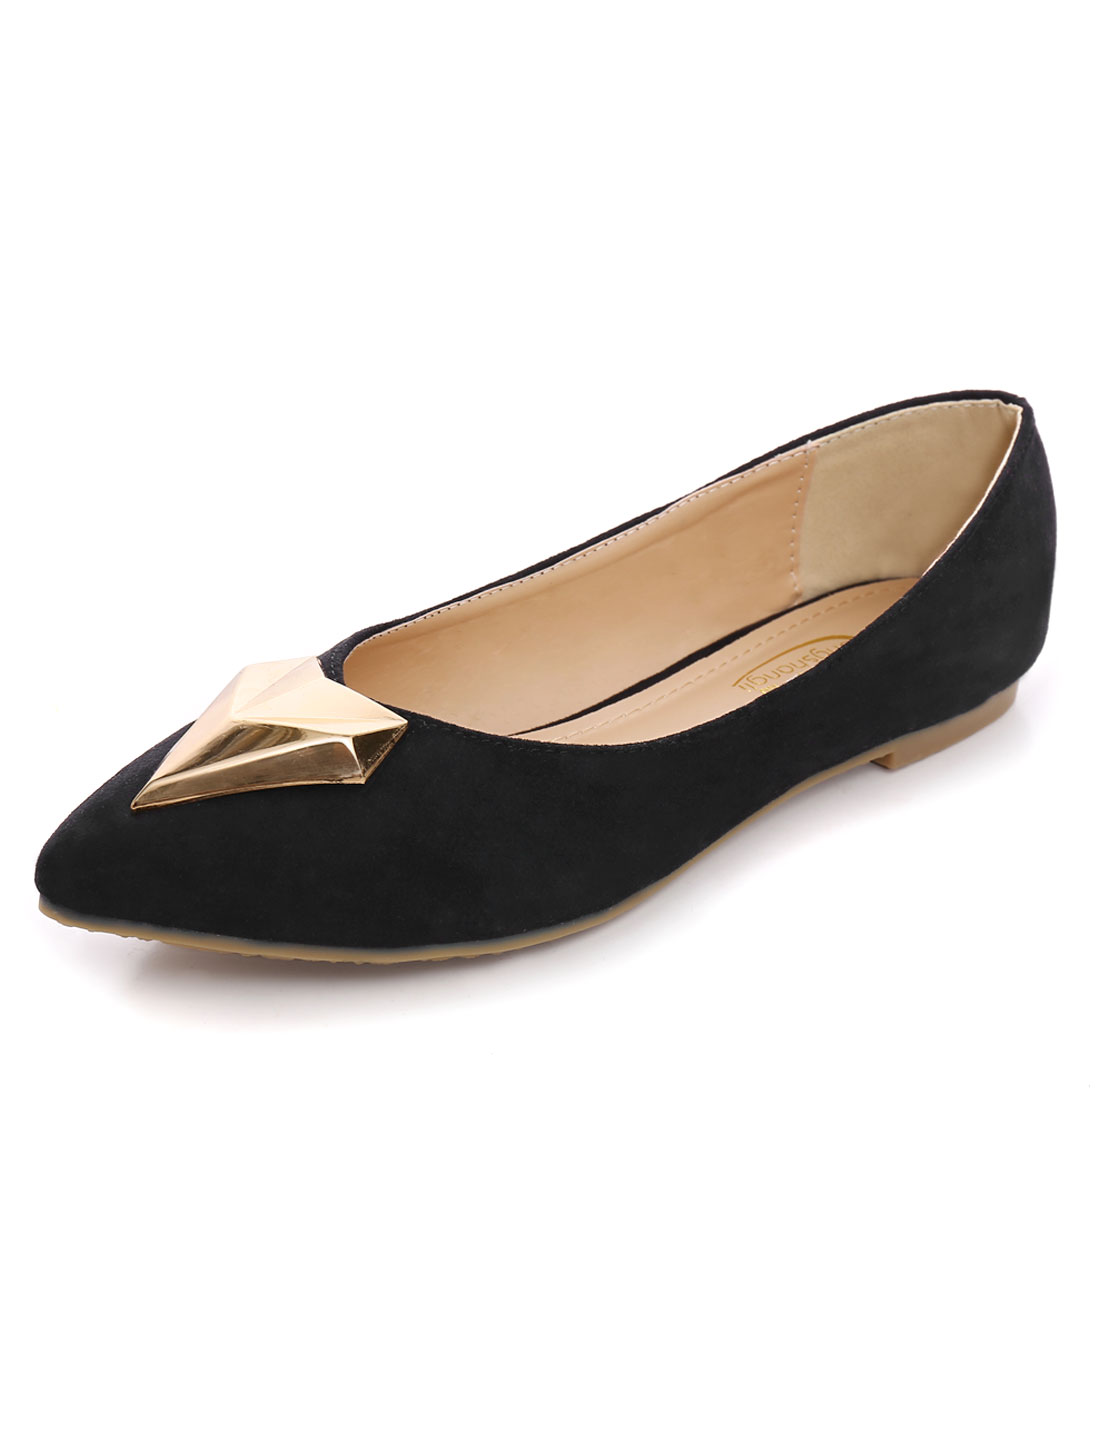 Women Pointed Toe Padded Insole Casual Flats Shoes Coal Black US 10.5